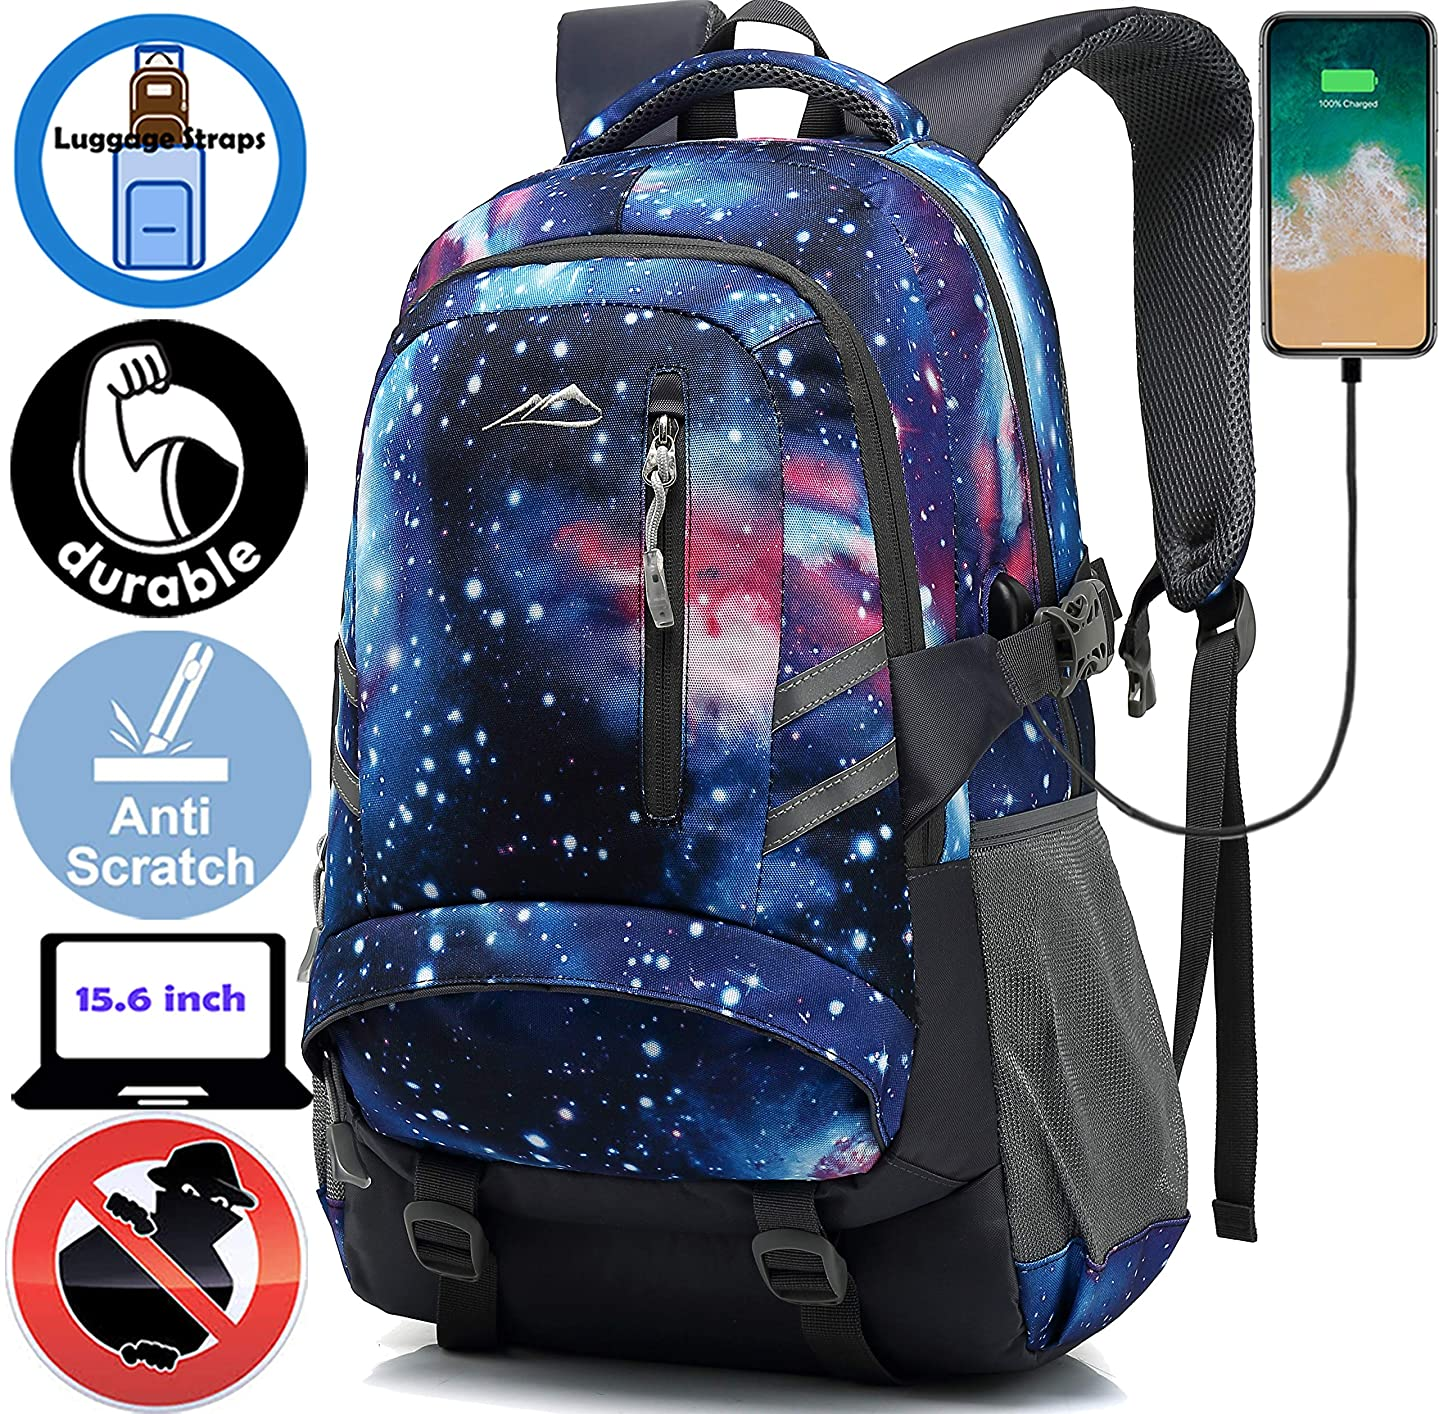 Backpack Bookbag for School Student College Business Travel Hiking Fit Laptop Up to 15.6 Inch